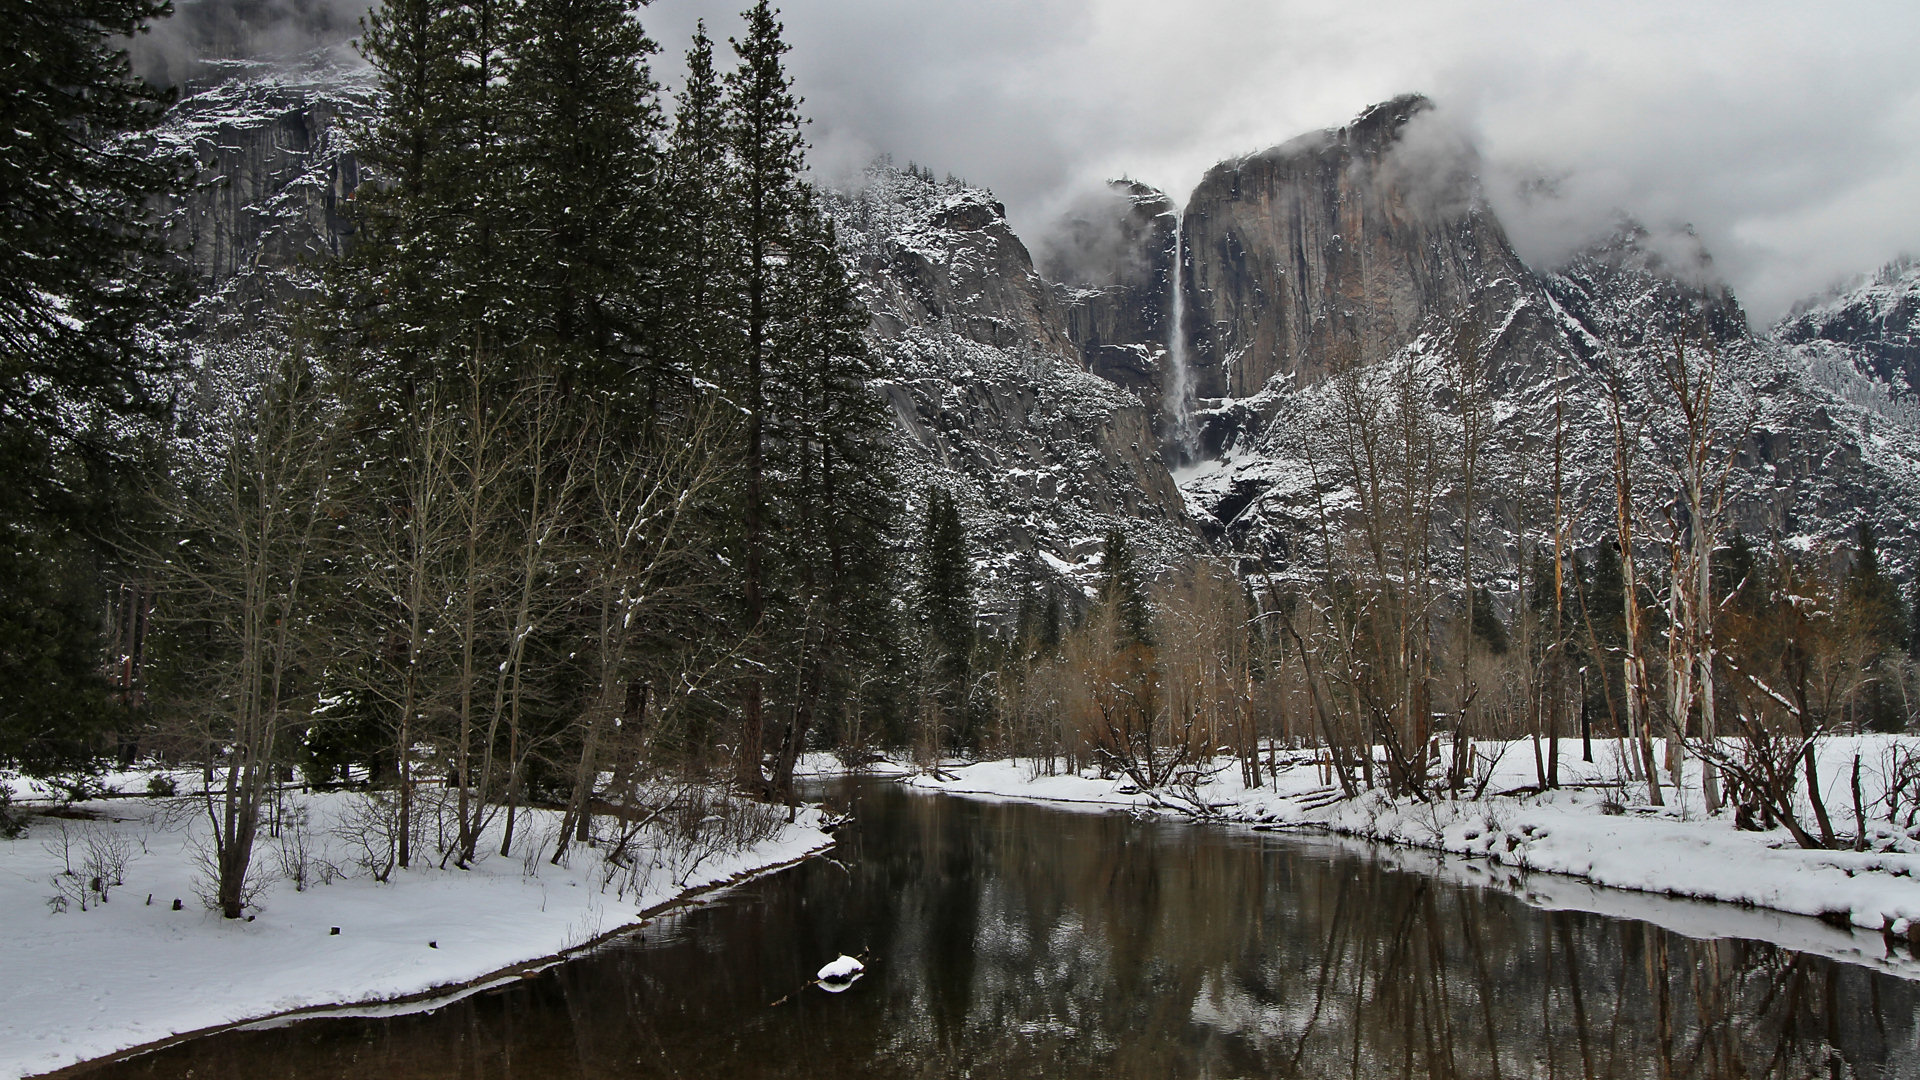 Google Wallpaper Images Fall Yosemite Wallpaper The Swinging Bridge In Winter